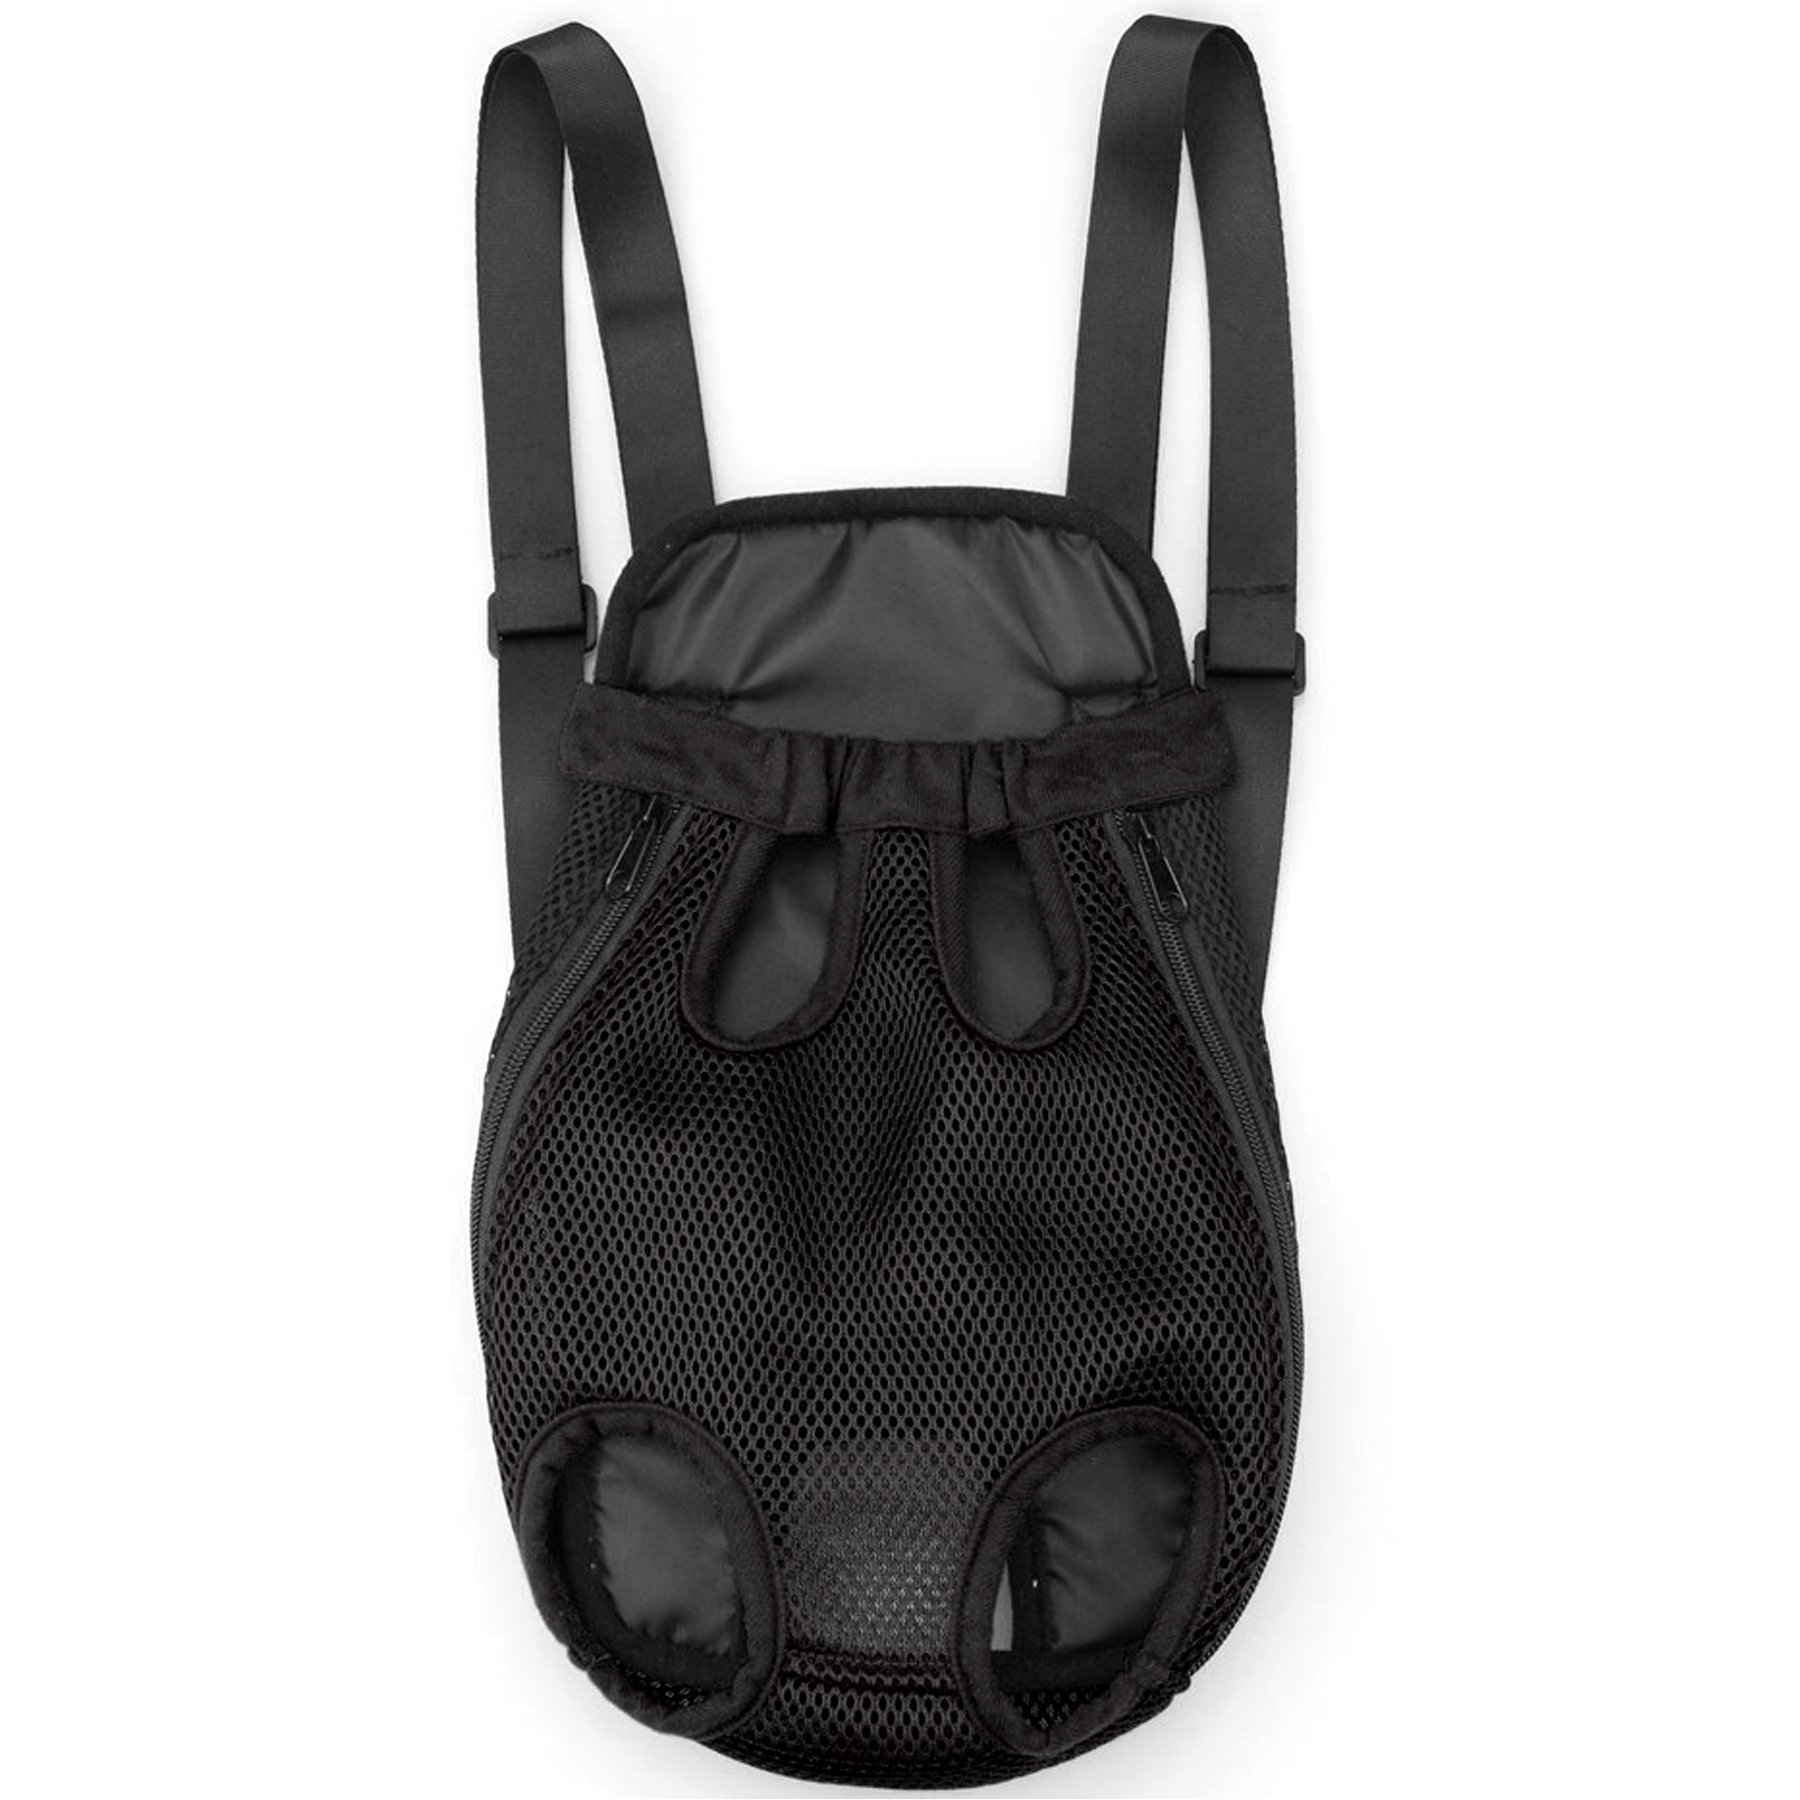 Alfie Pet by Petoga Couture - Alex Pet Backpack or Front Carrier with Adjustable Strap - Color: Black, Size: Medium